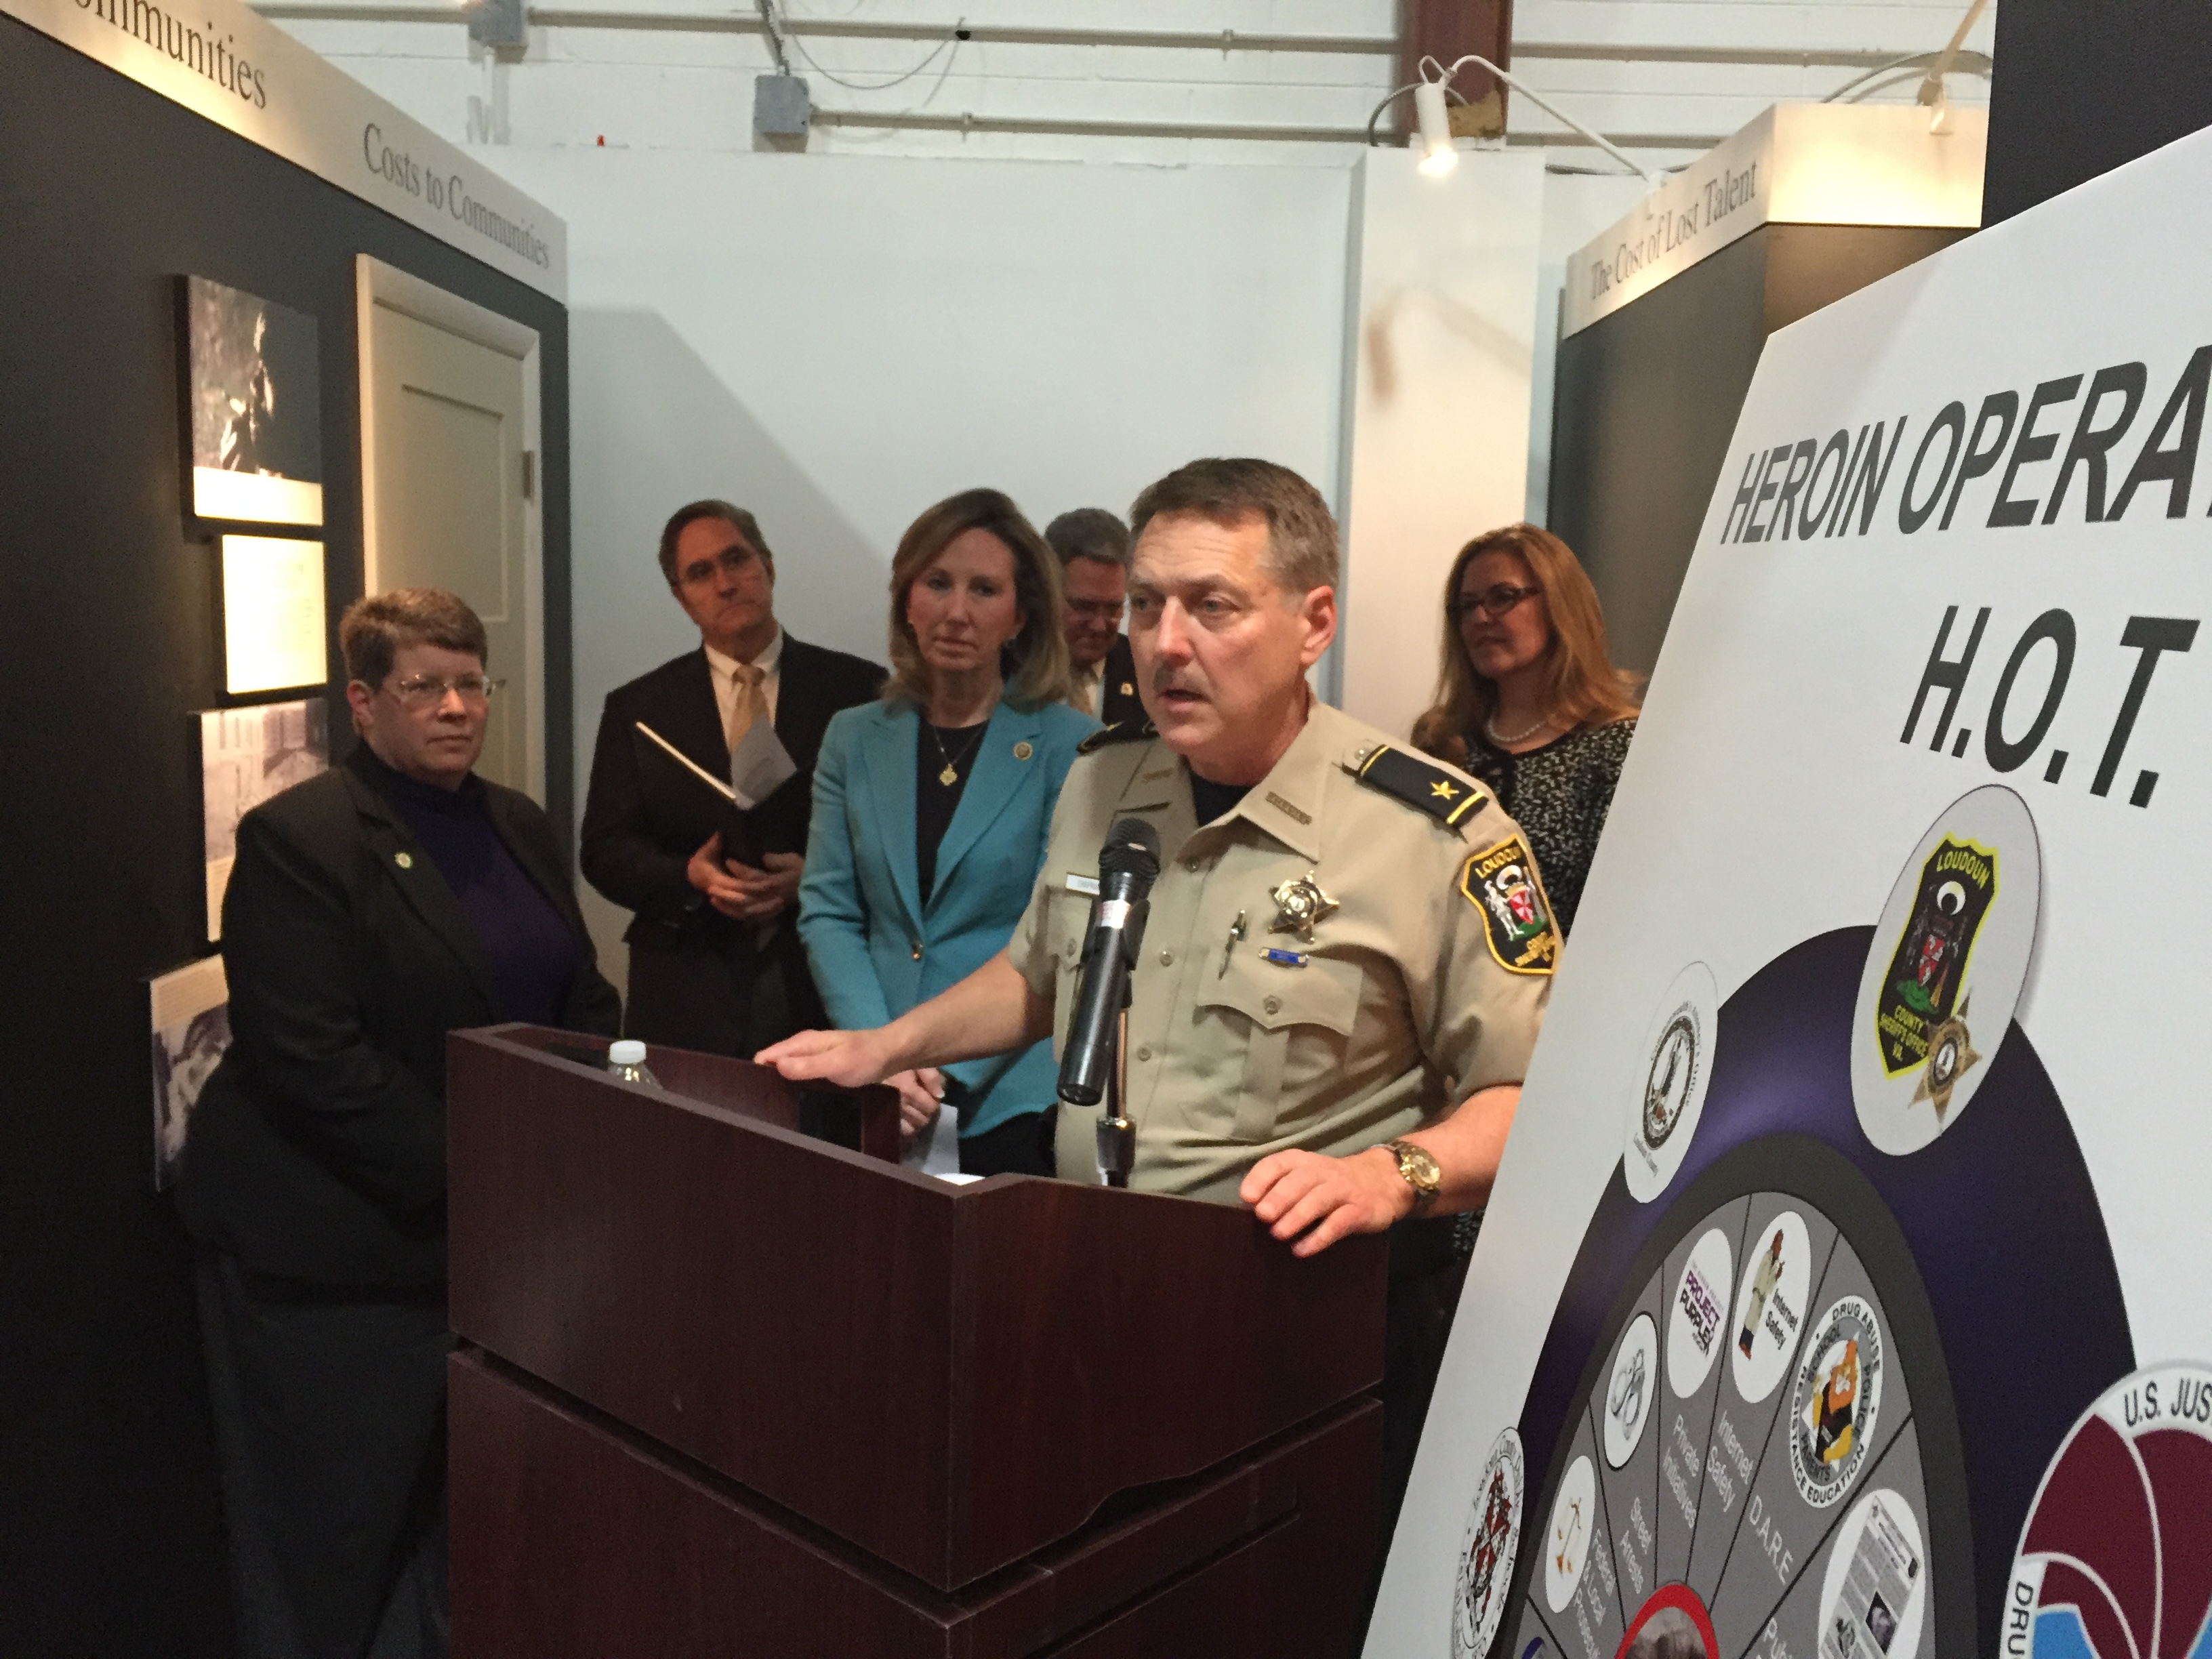 Meeting in Va. highlights role parents can play in preventing heroin overdoses